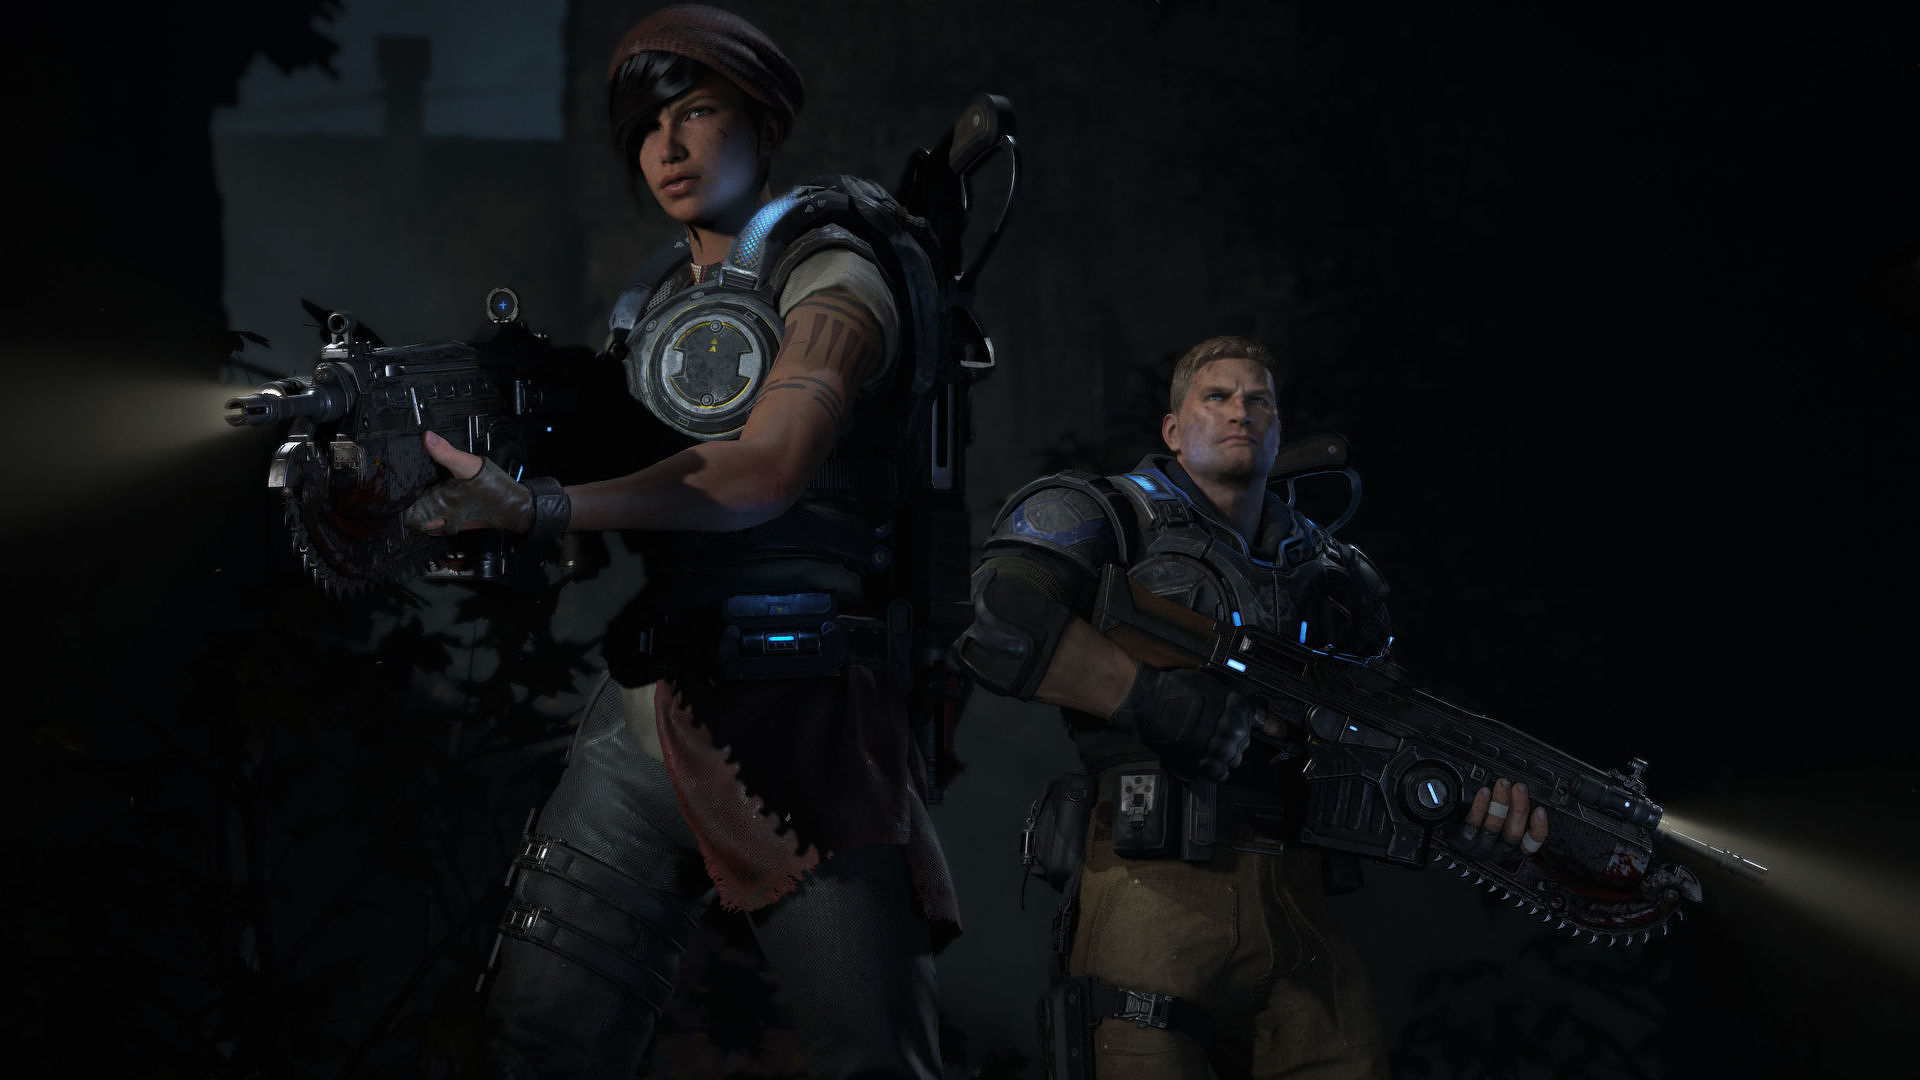 V Gears of War 4 split-screen bude, v Halo 5 nikoliv 110397